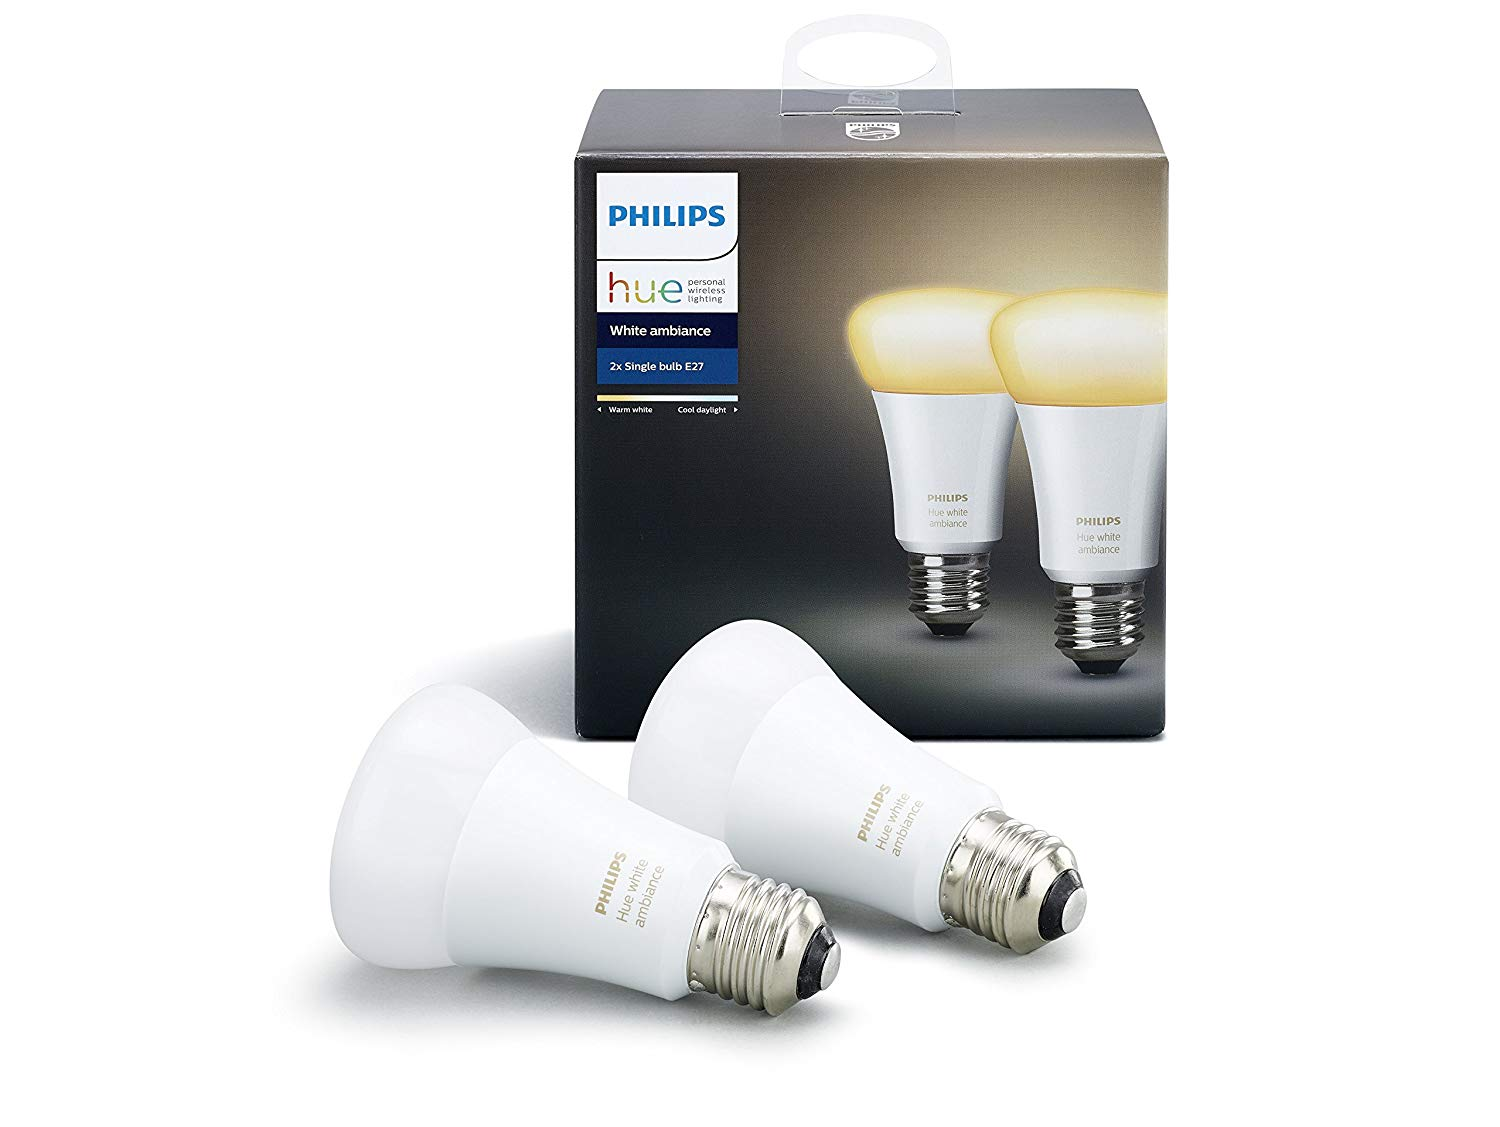 Philips Hue White Ambience Twin pack A19 E27 60W Equivalent Dimmable LED Smart Bulbs